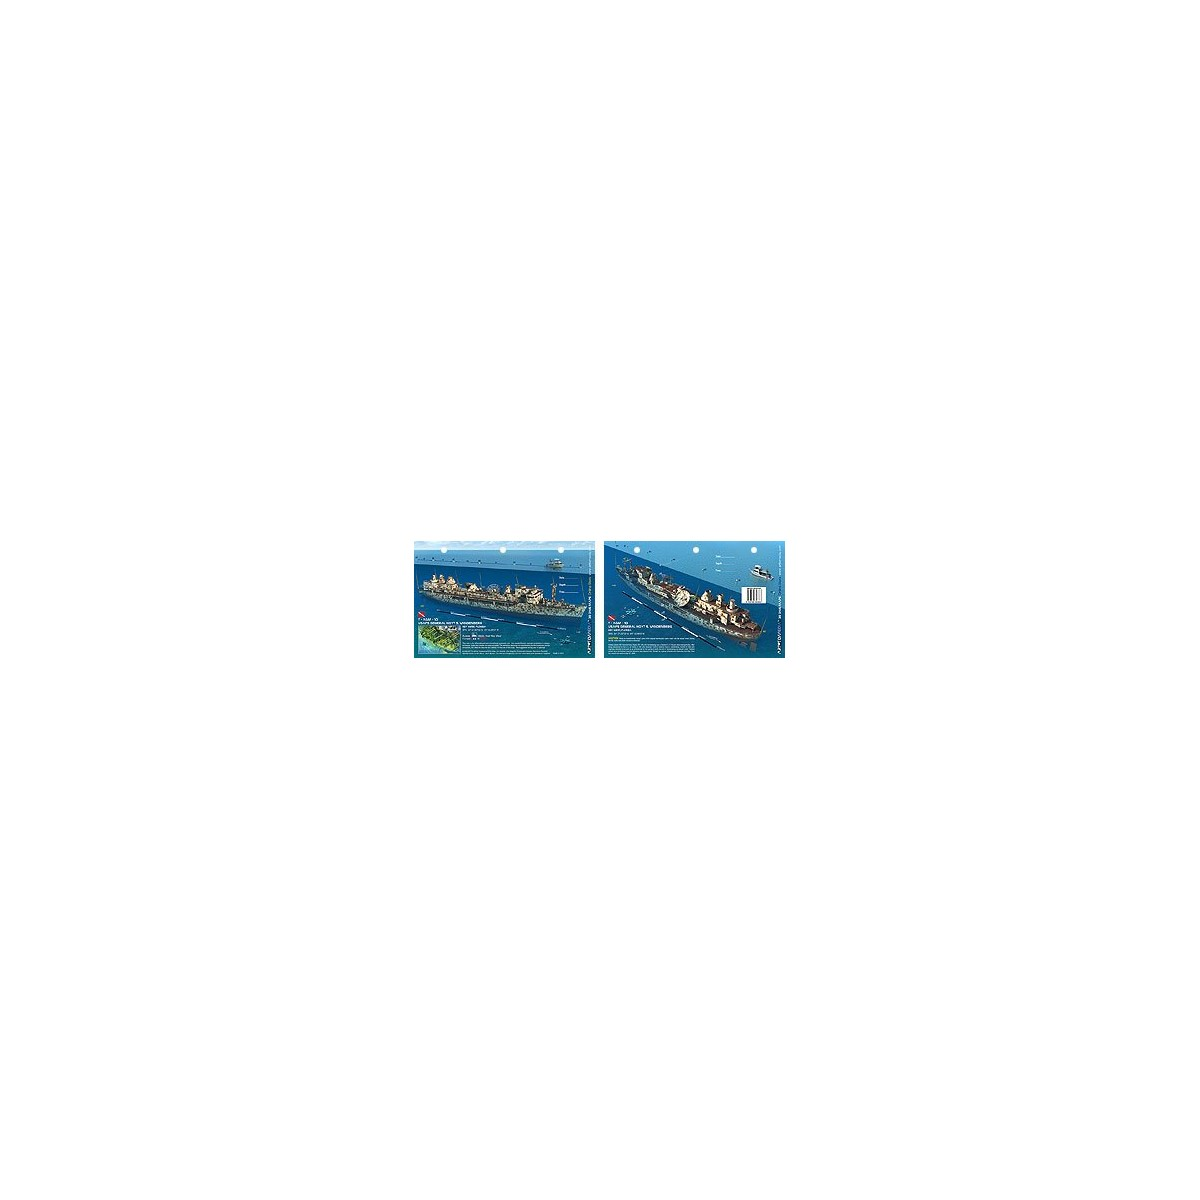 Vandenberg in Key West, Florida (8.5 x 5.5 Inches) (21.6 x 15cm) - New Art to Media Underwater Waterproof 3D Dive Site Map